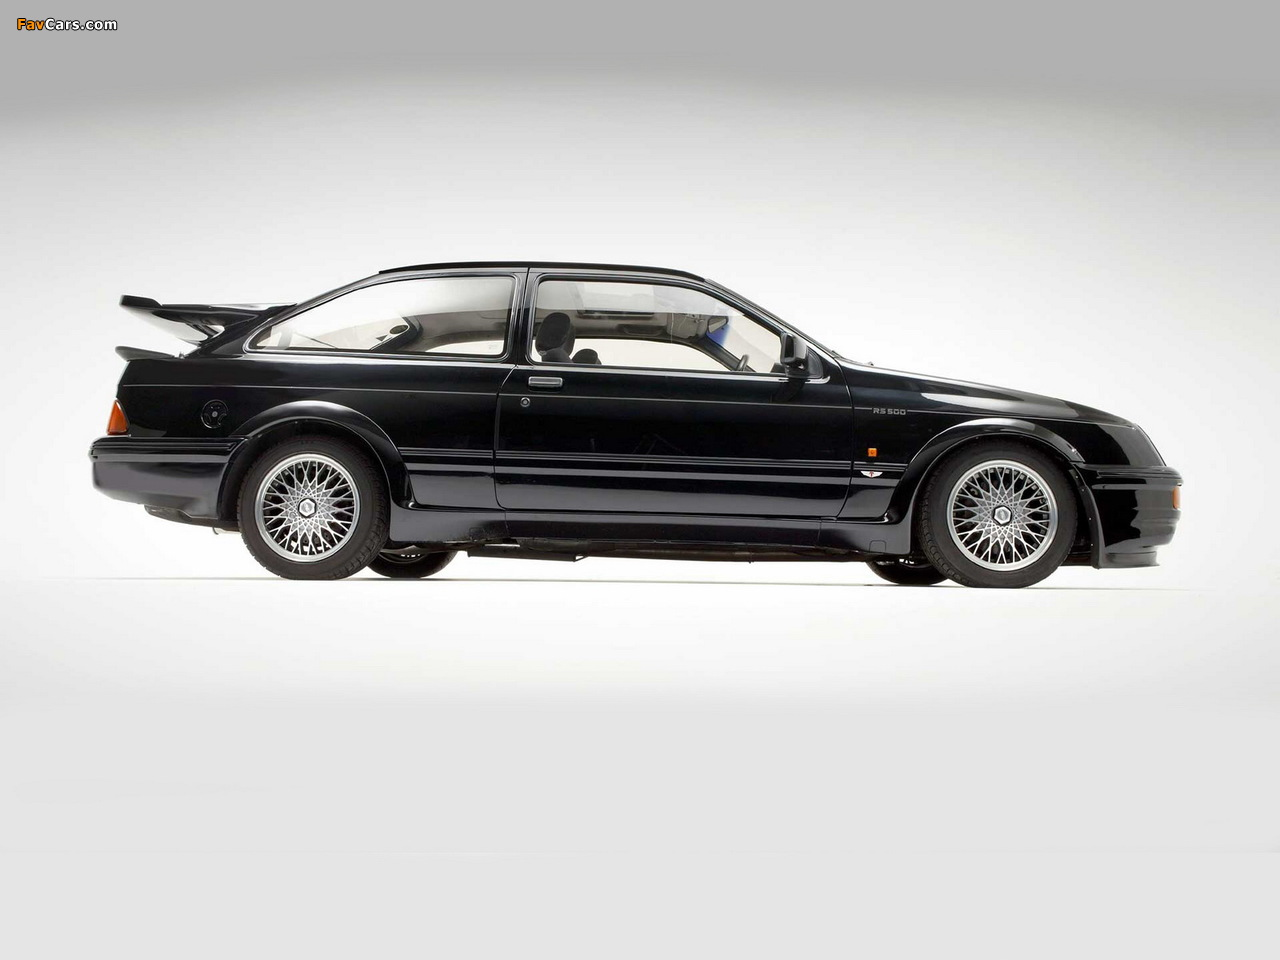 Ford Sierra RS500 Cosworth 1987 wallpapers (1280 x 960)